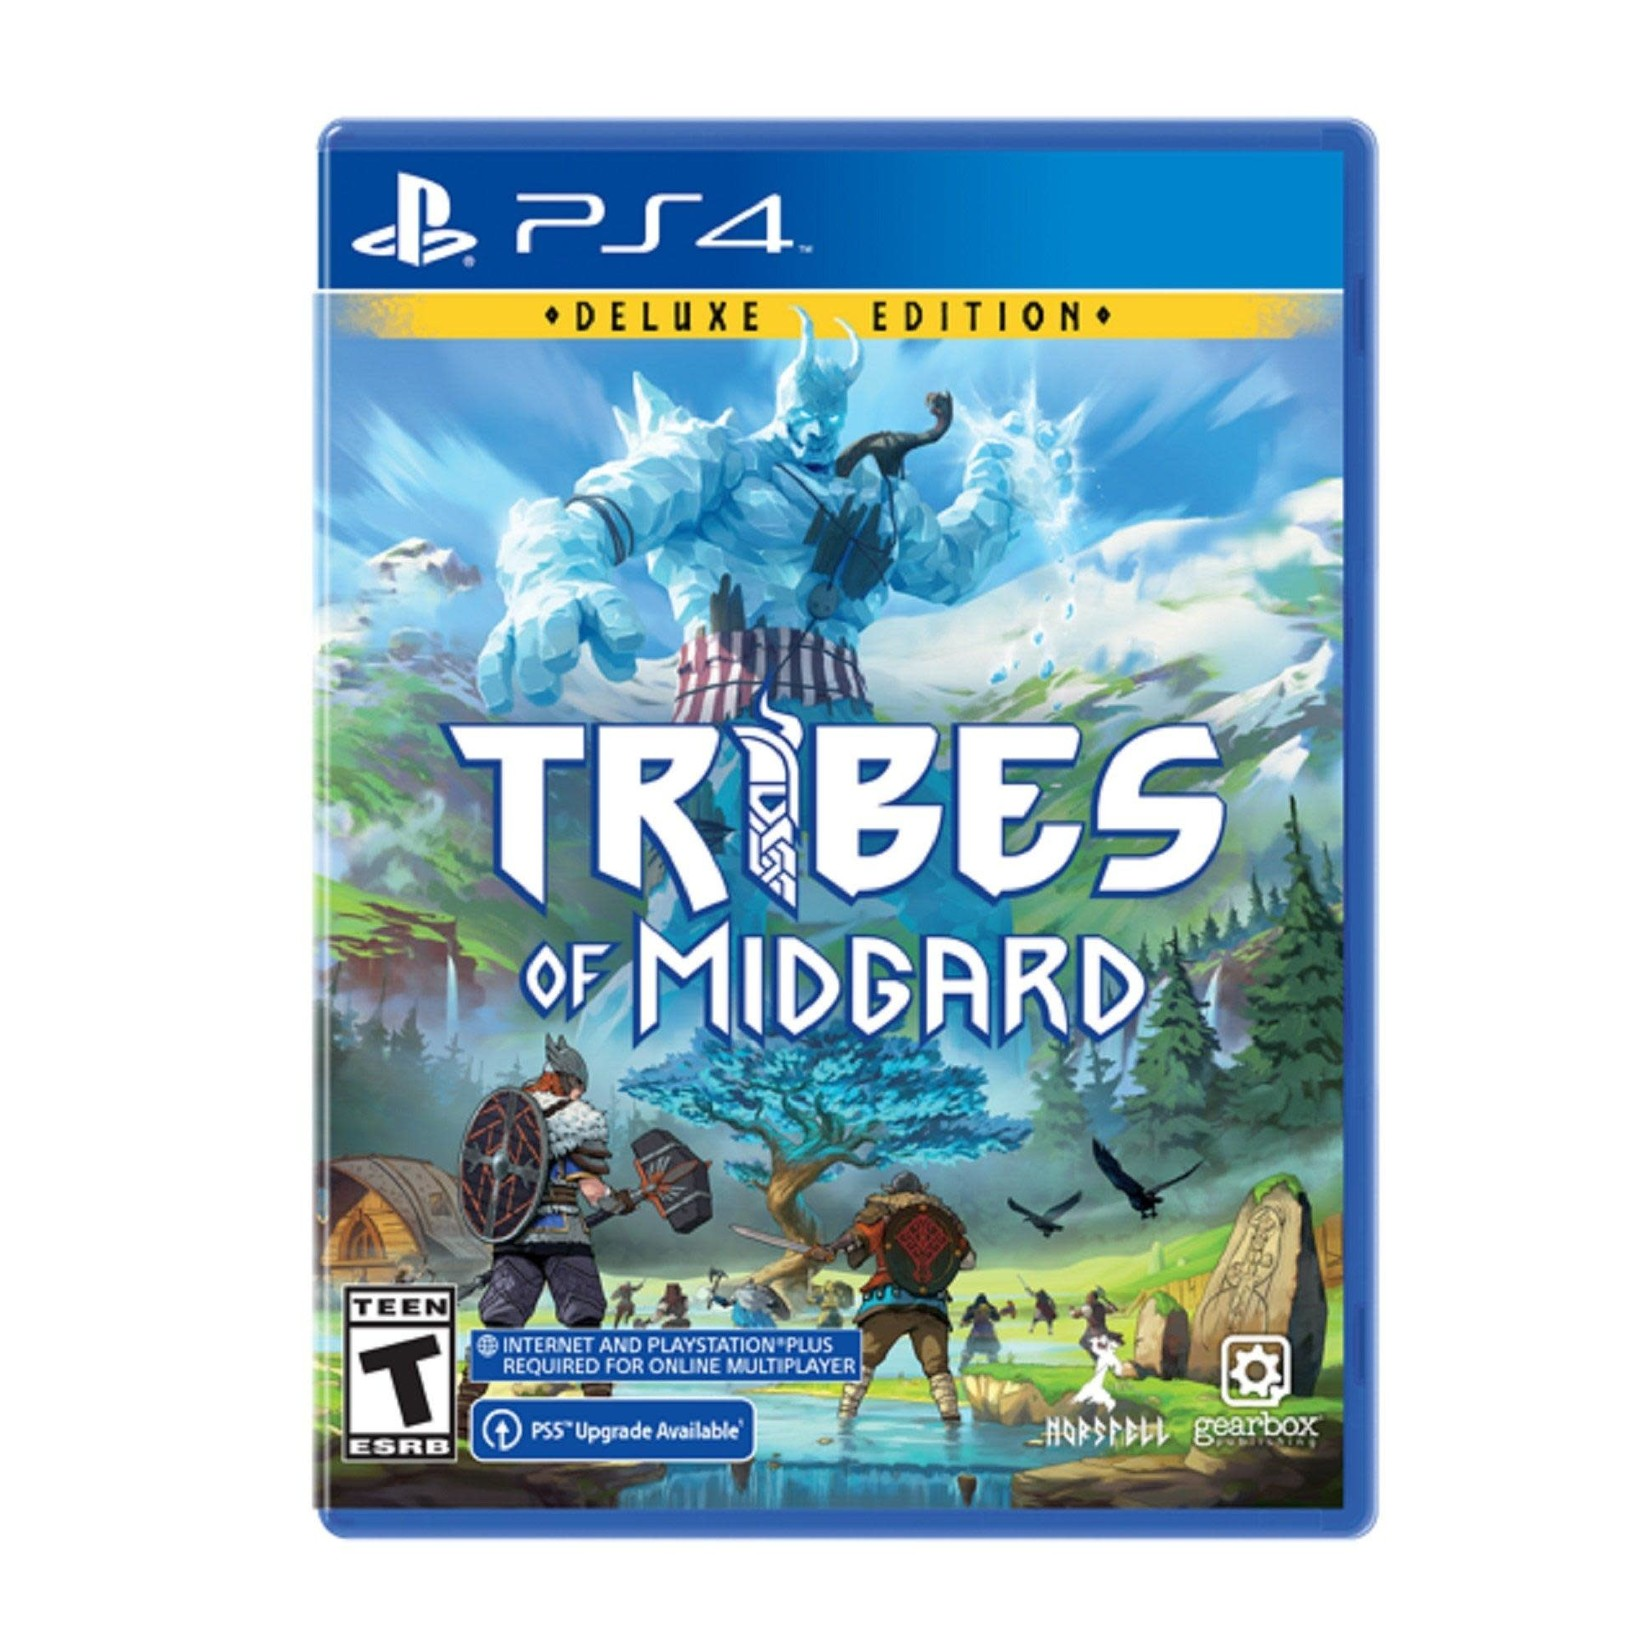 PS4-Tribes of Midgard: Deluxe Edition